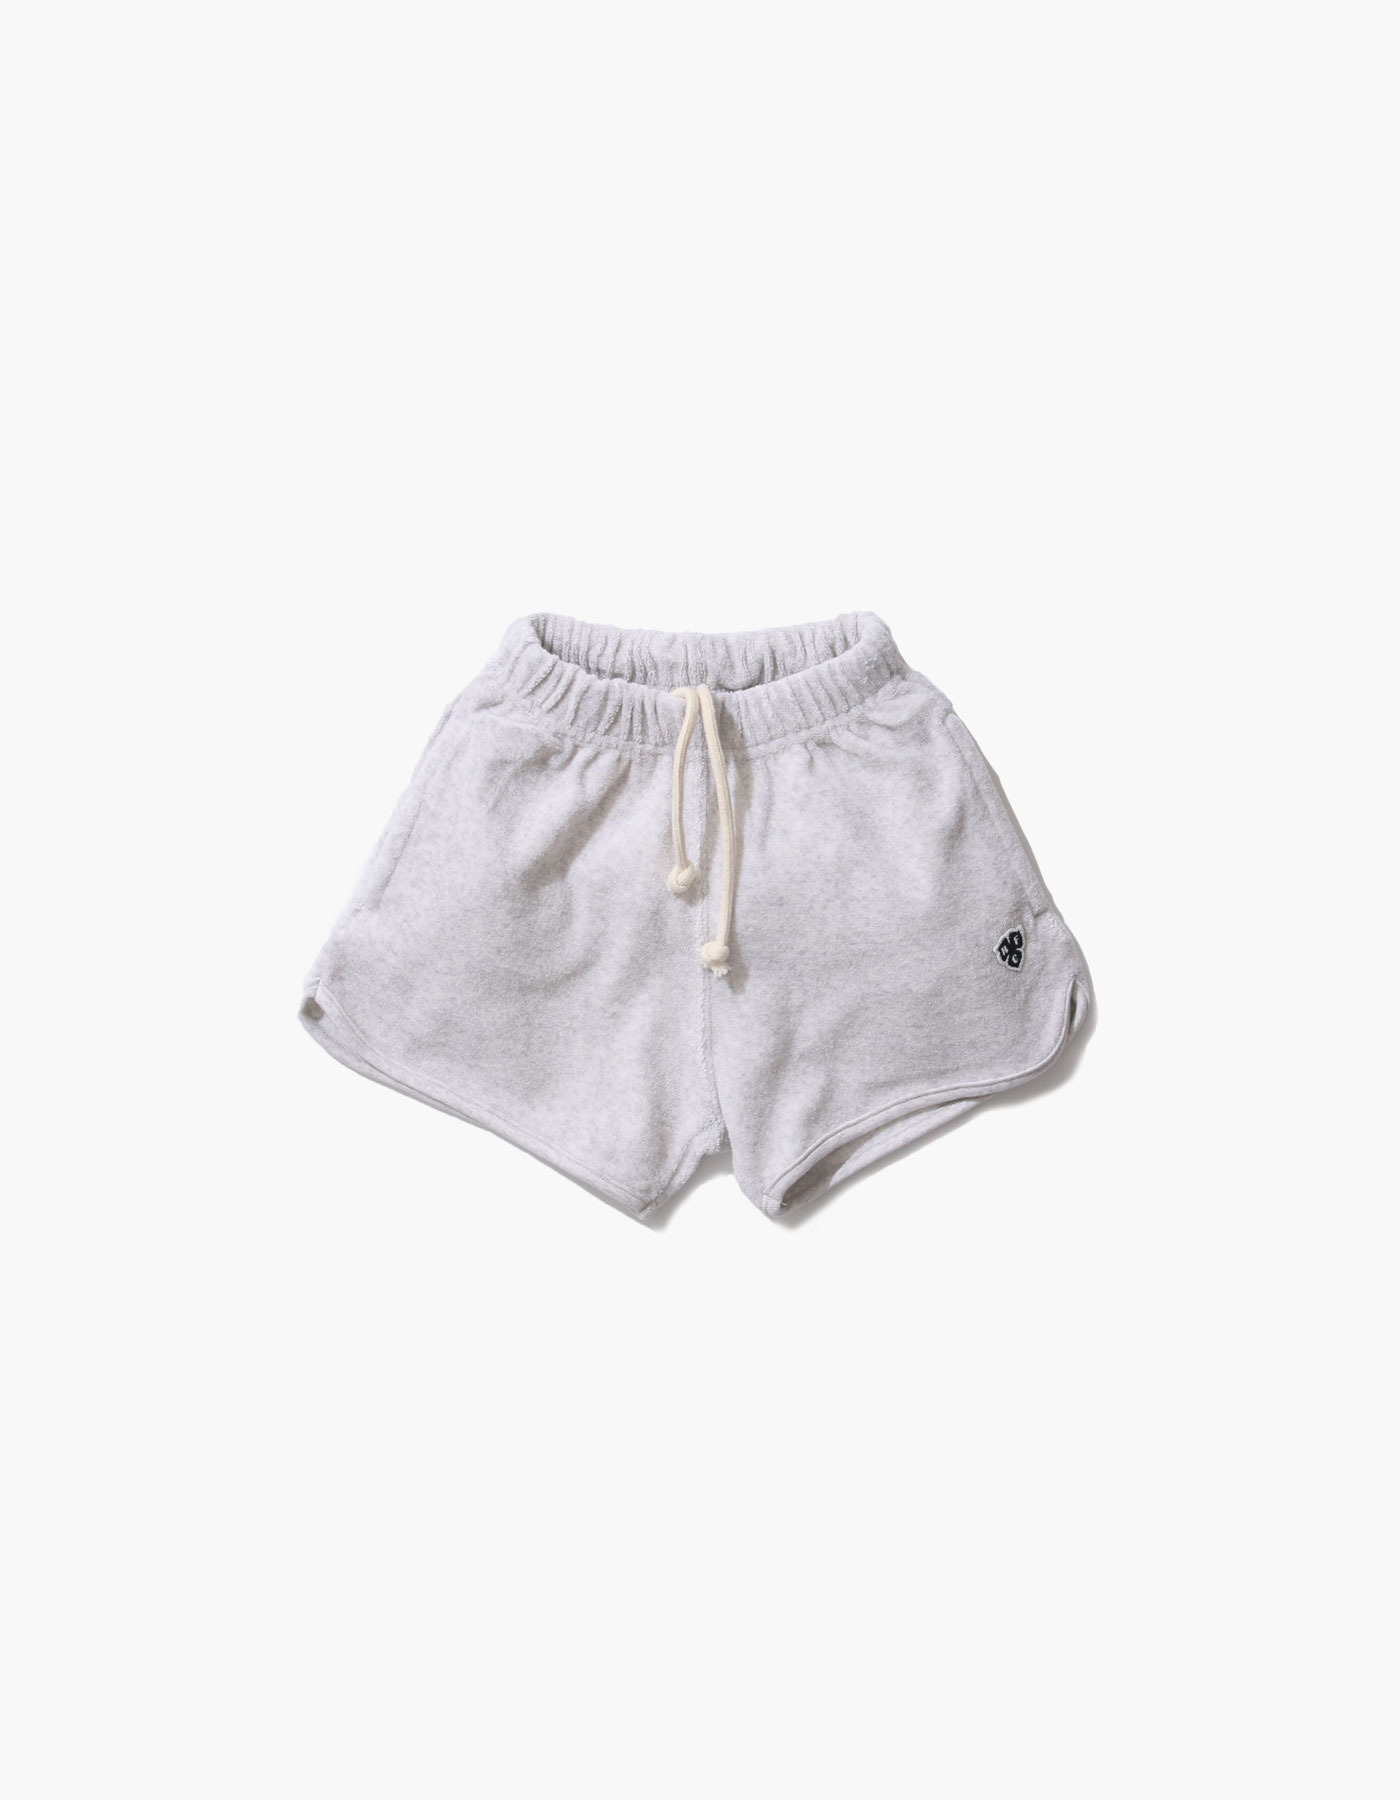 HFC CREST KIDS TOWEL SHORTS / M.GREY(1%)